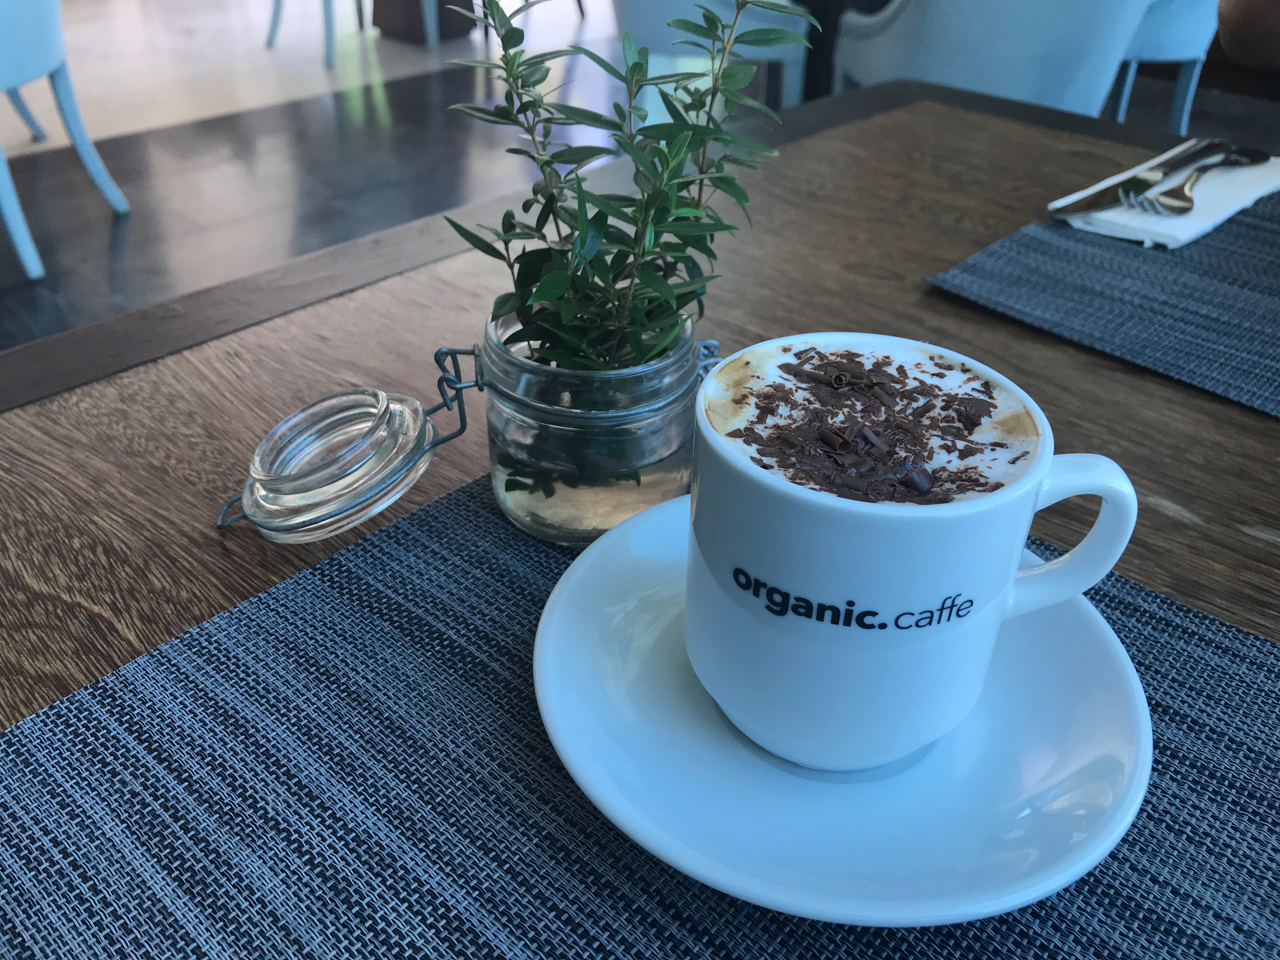 A photo of a cappuccino covered with chocolate shavings sitting beside an herb plant on a table at Organic Caffe in Estoril, Portugal.